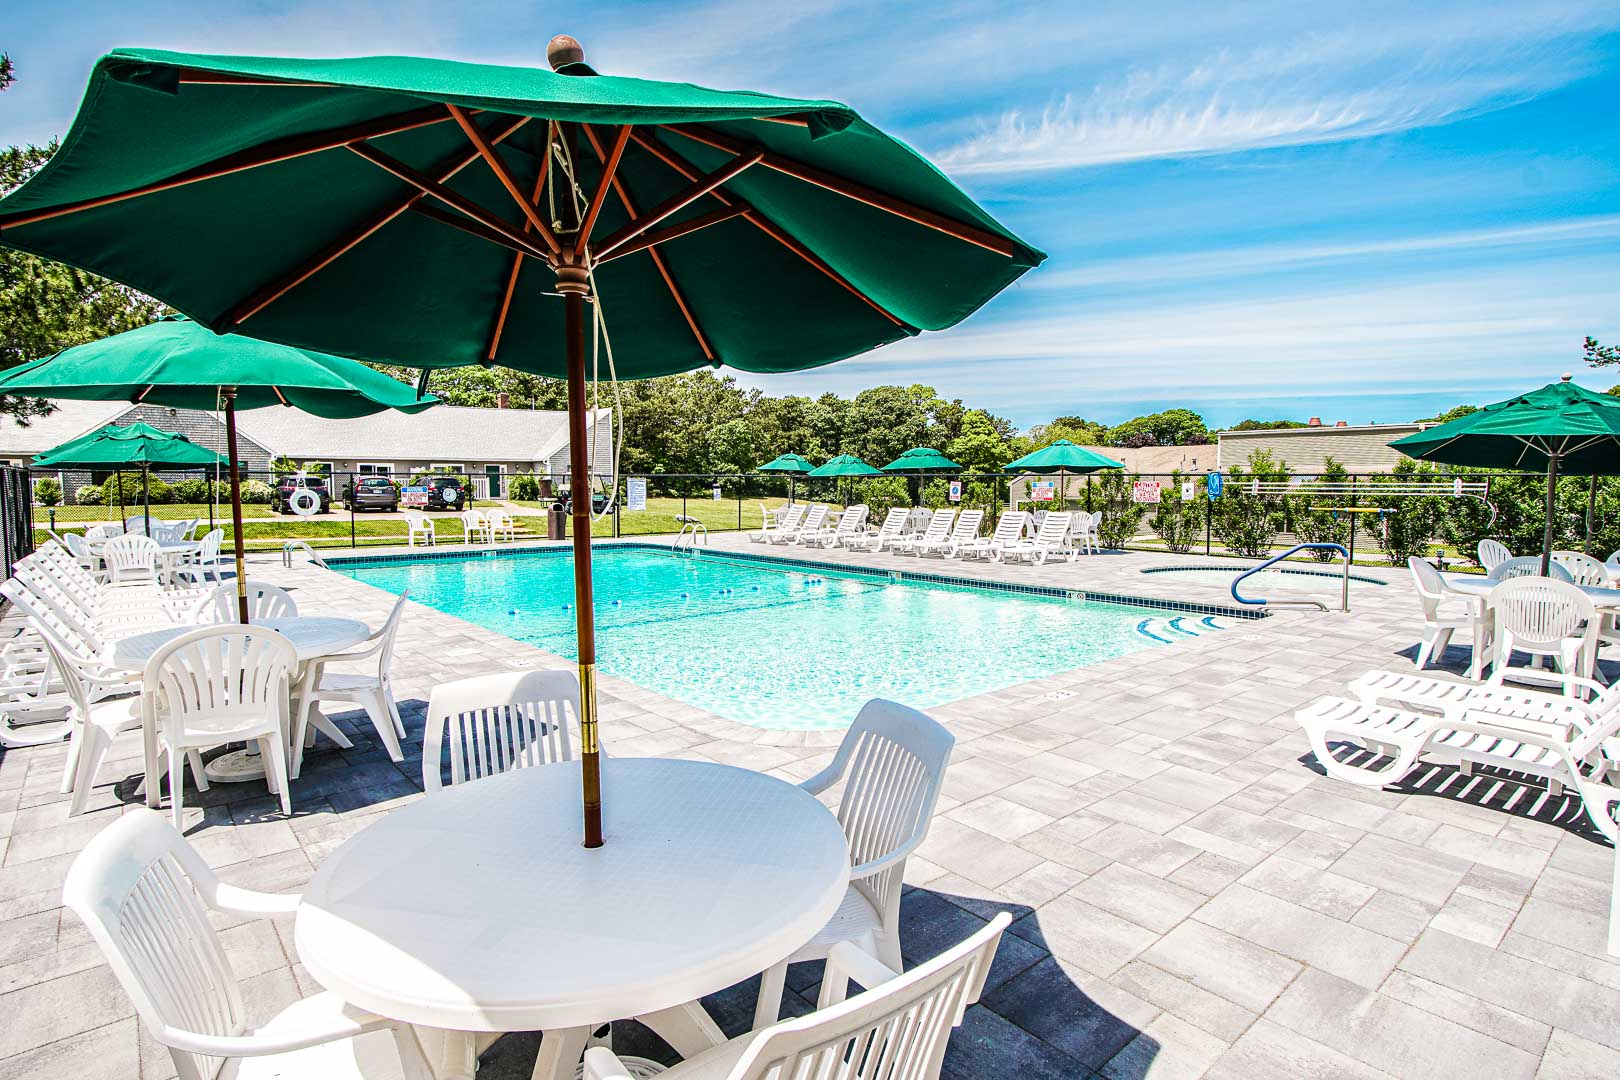 A relaxing swimming pool area at VRI's Brewster Green Resort in Massachusetts.